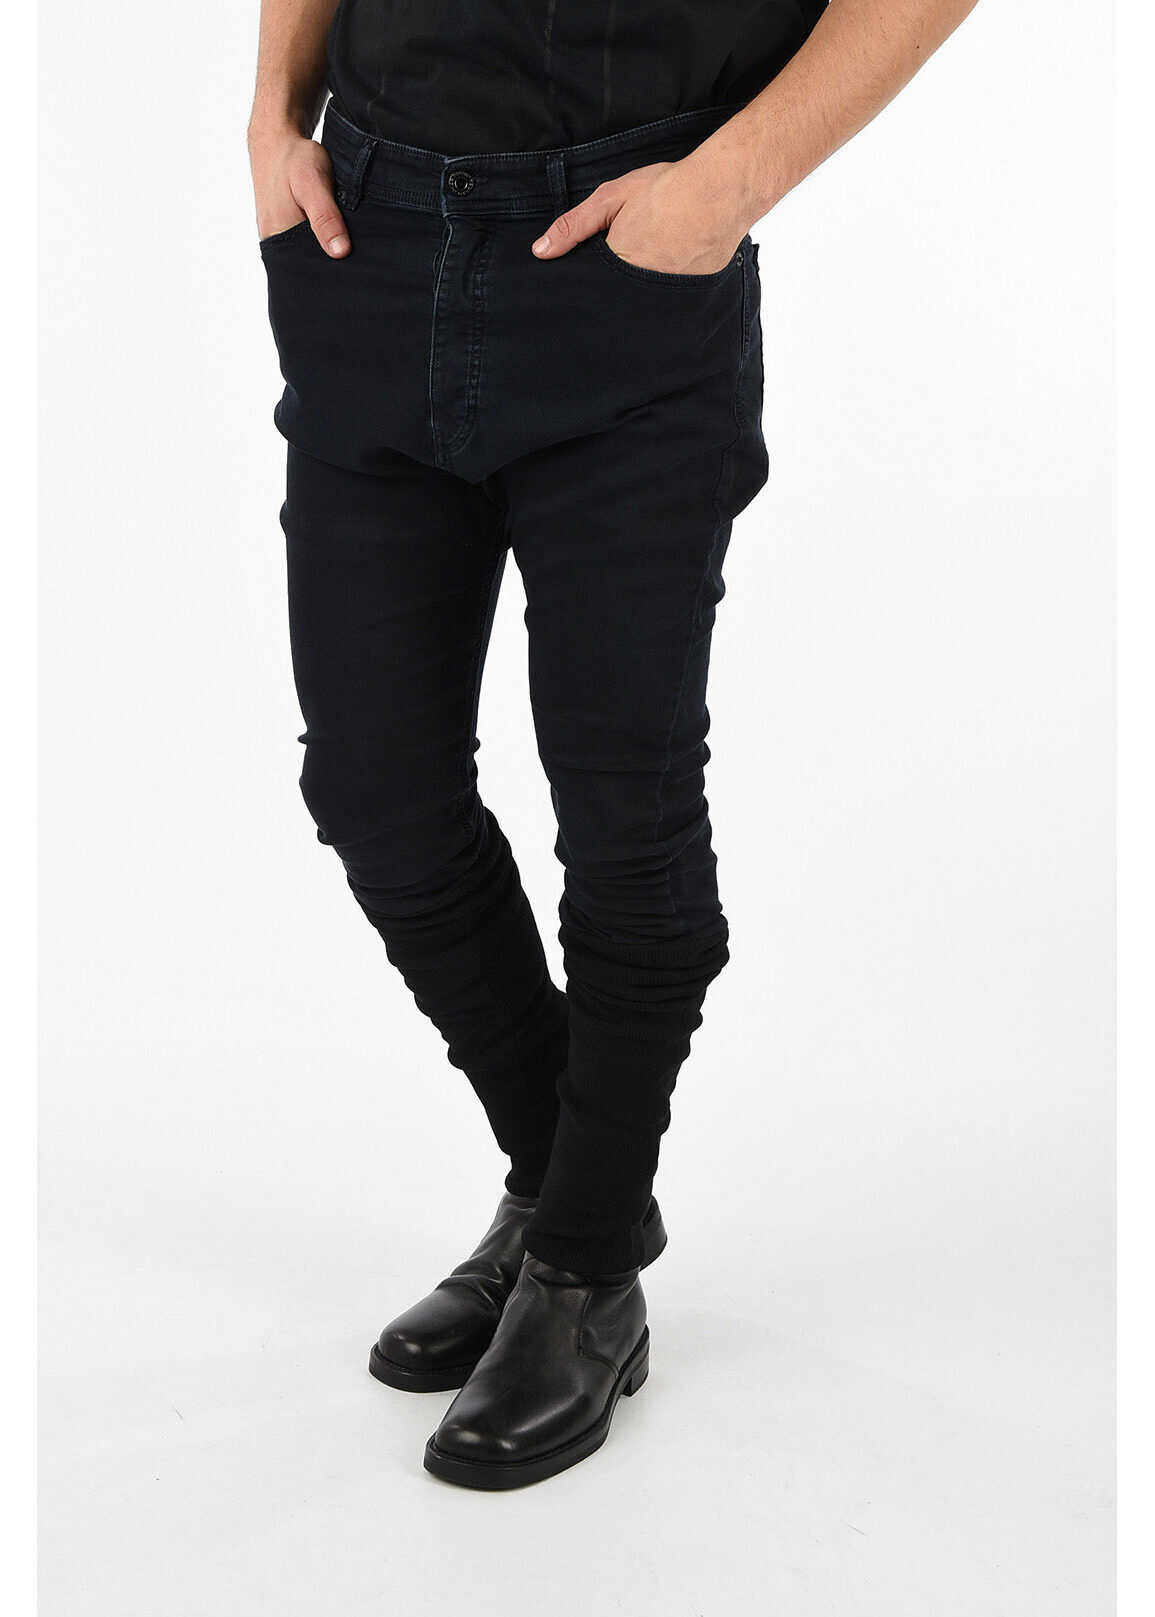 Diesel BLACK GOLD Knitted Ankle TYPE-2840 Jeans BLUE imagine